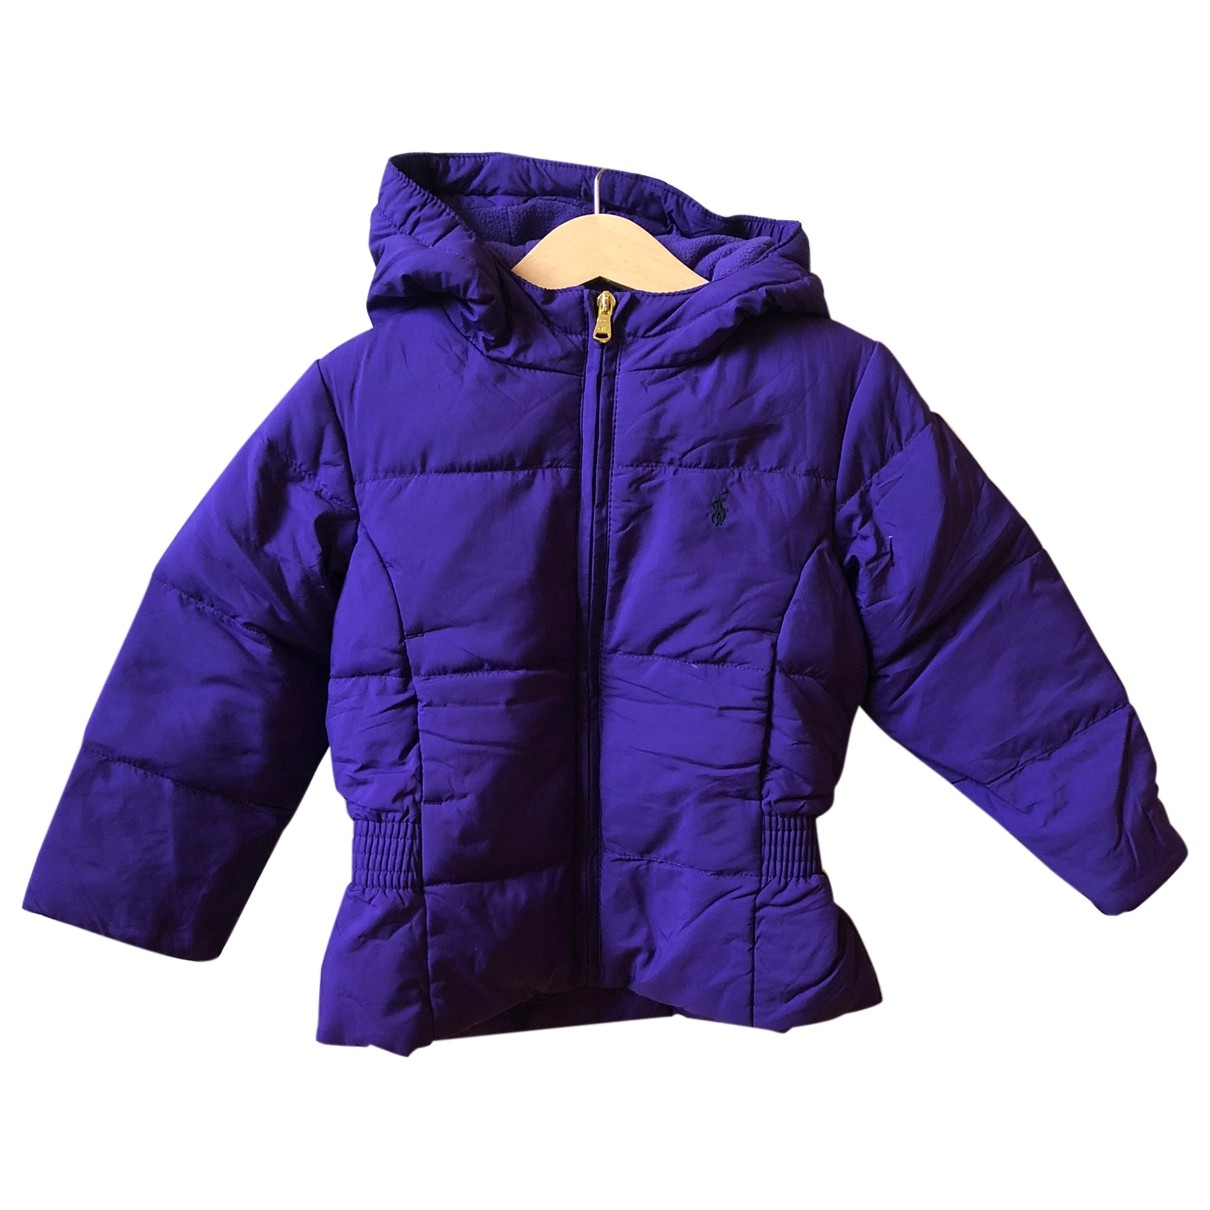 Polo Ralph Lauren \N Purple Cotton jacket & coat for Kids 3 years - until 39 inches UK